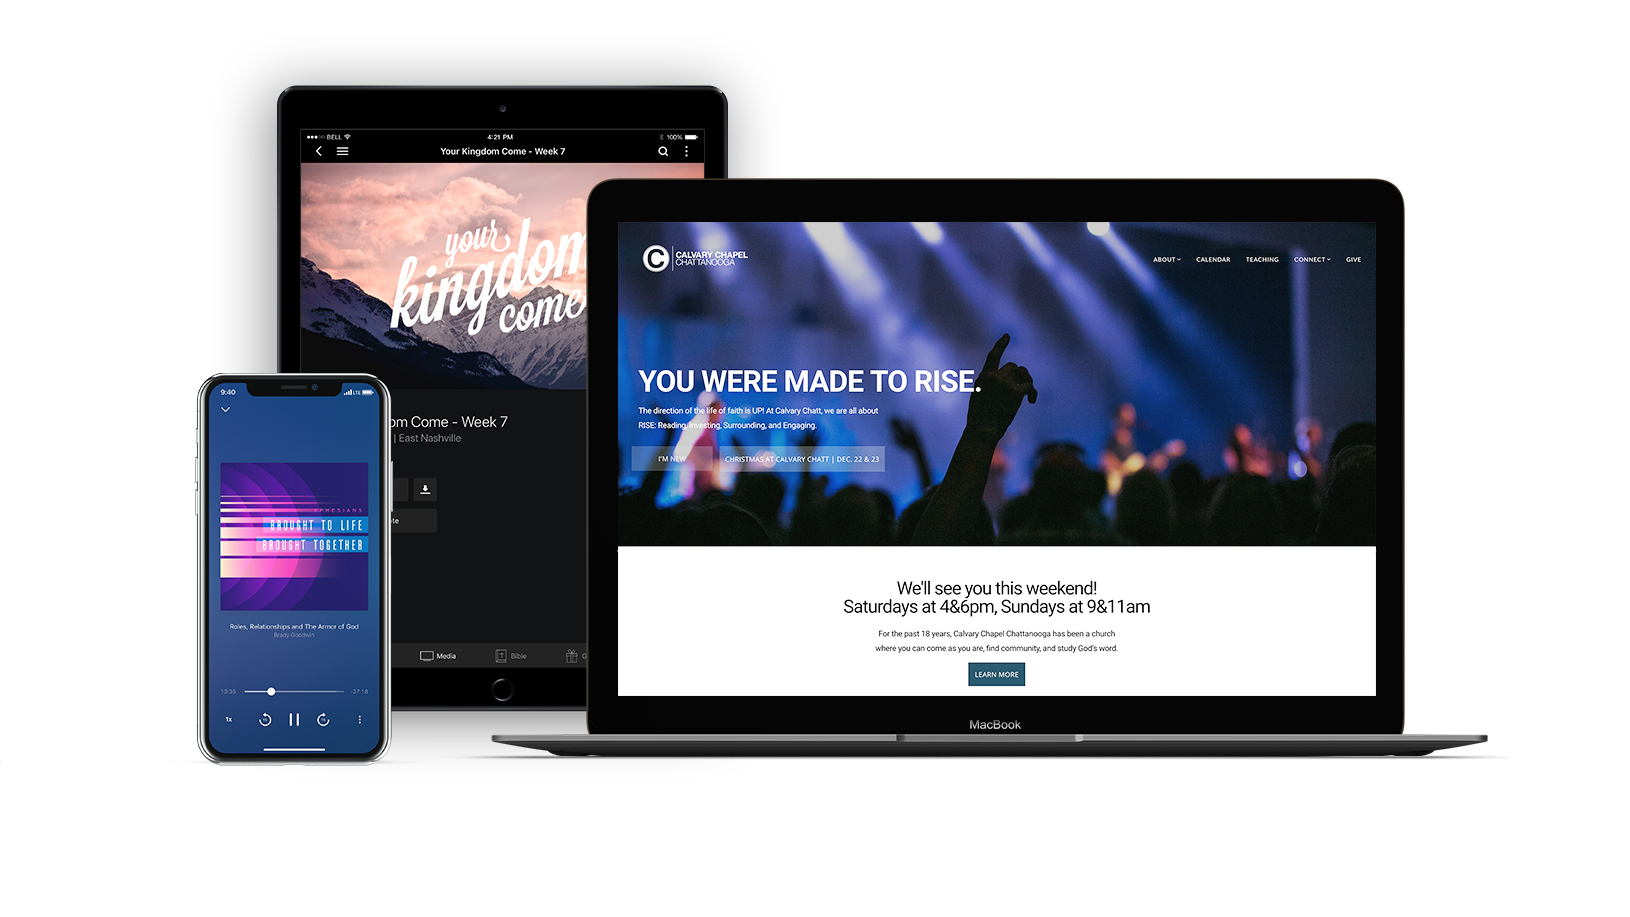 Subsplash com | Engage your audience like never before